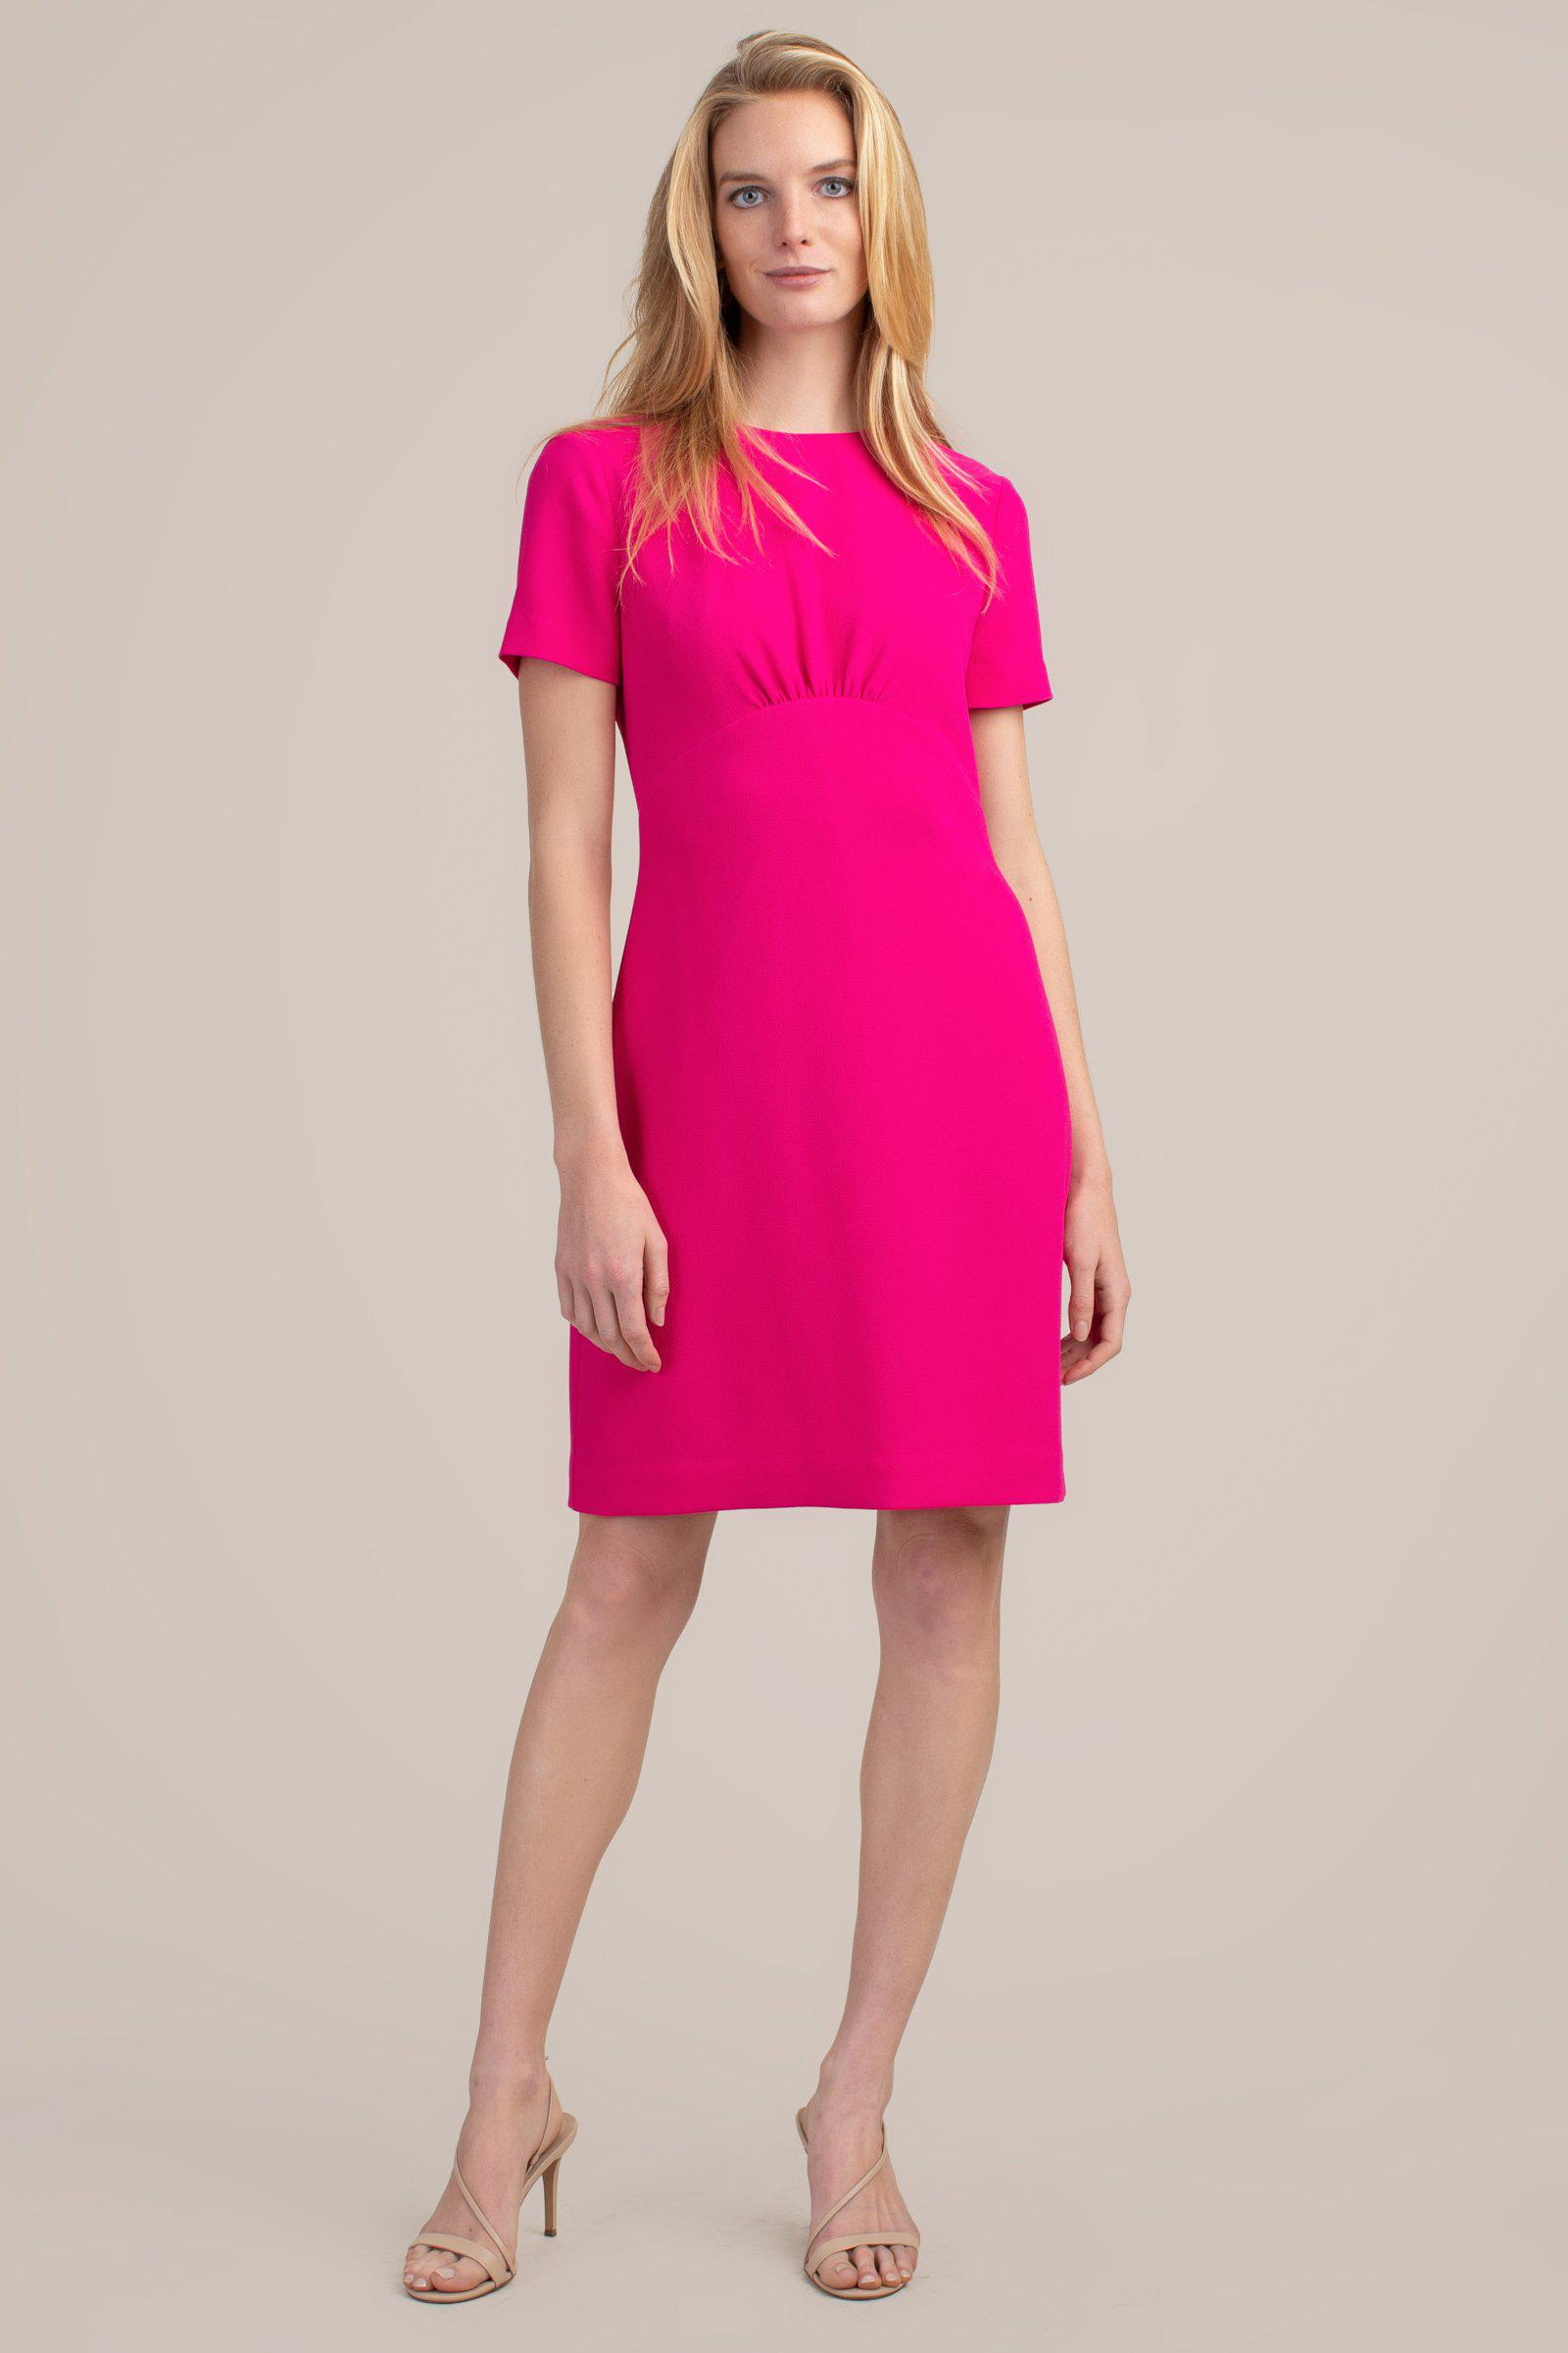 CONTRACT DRESS